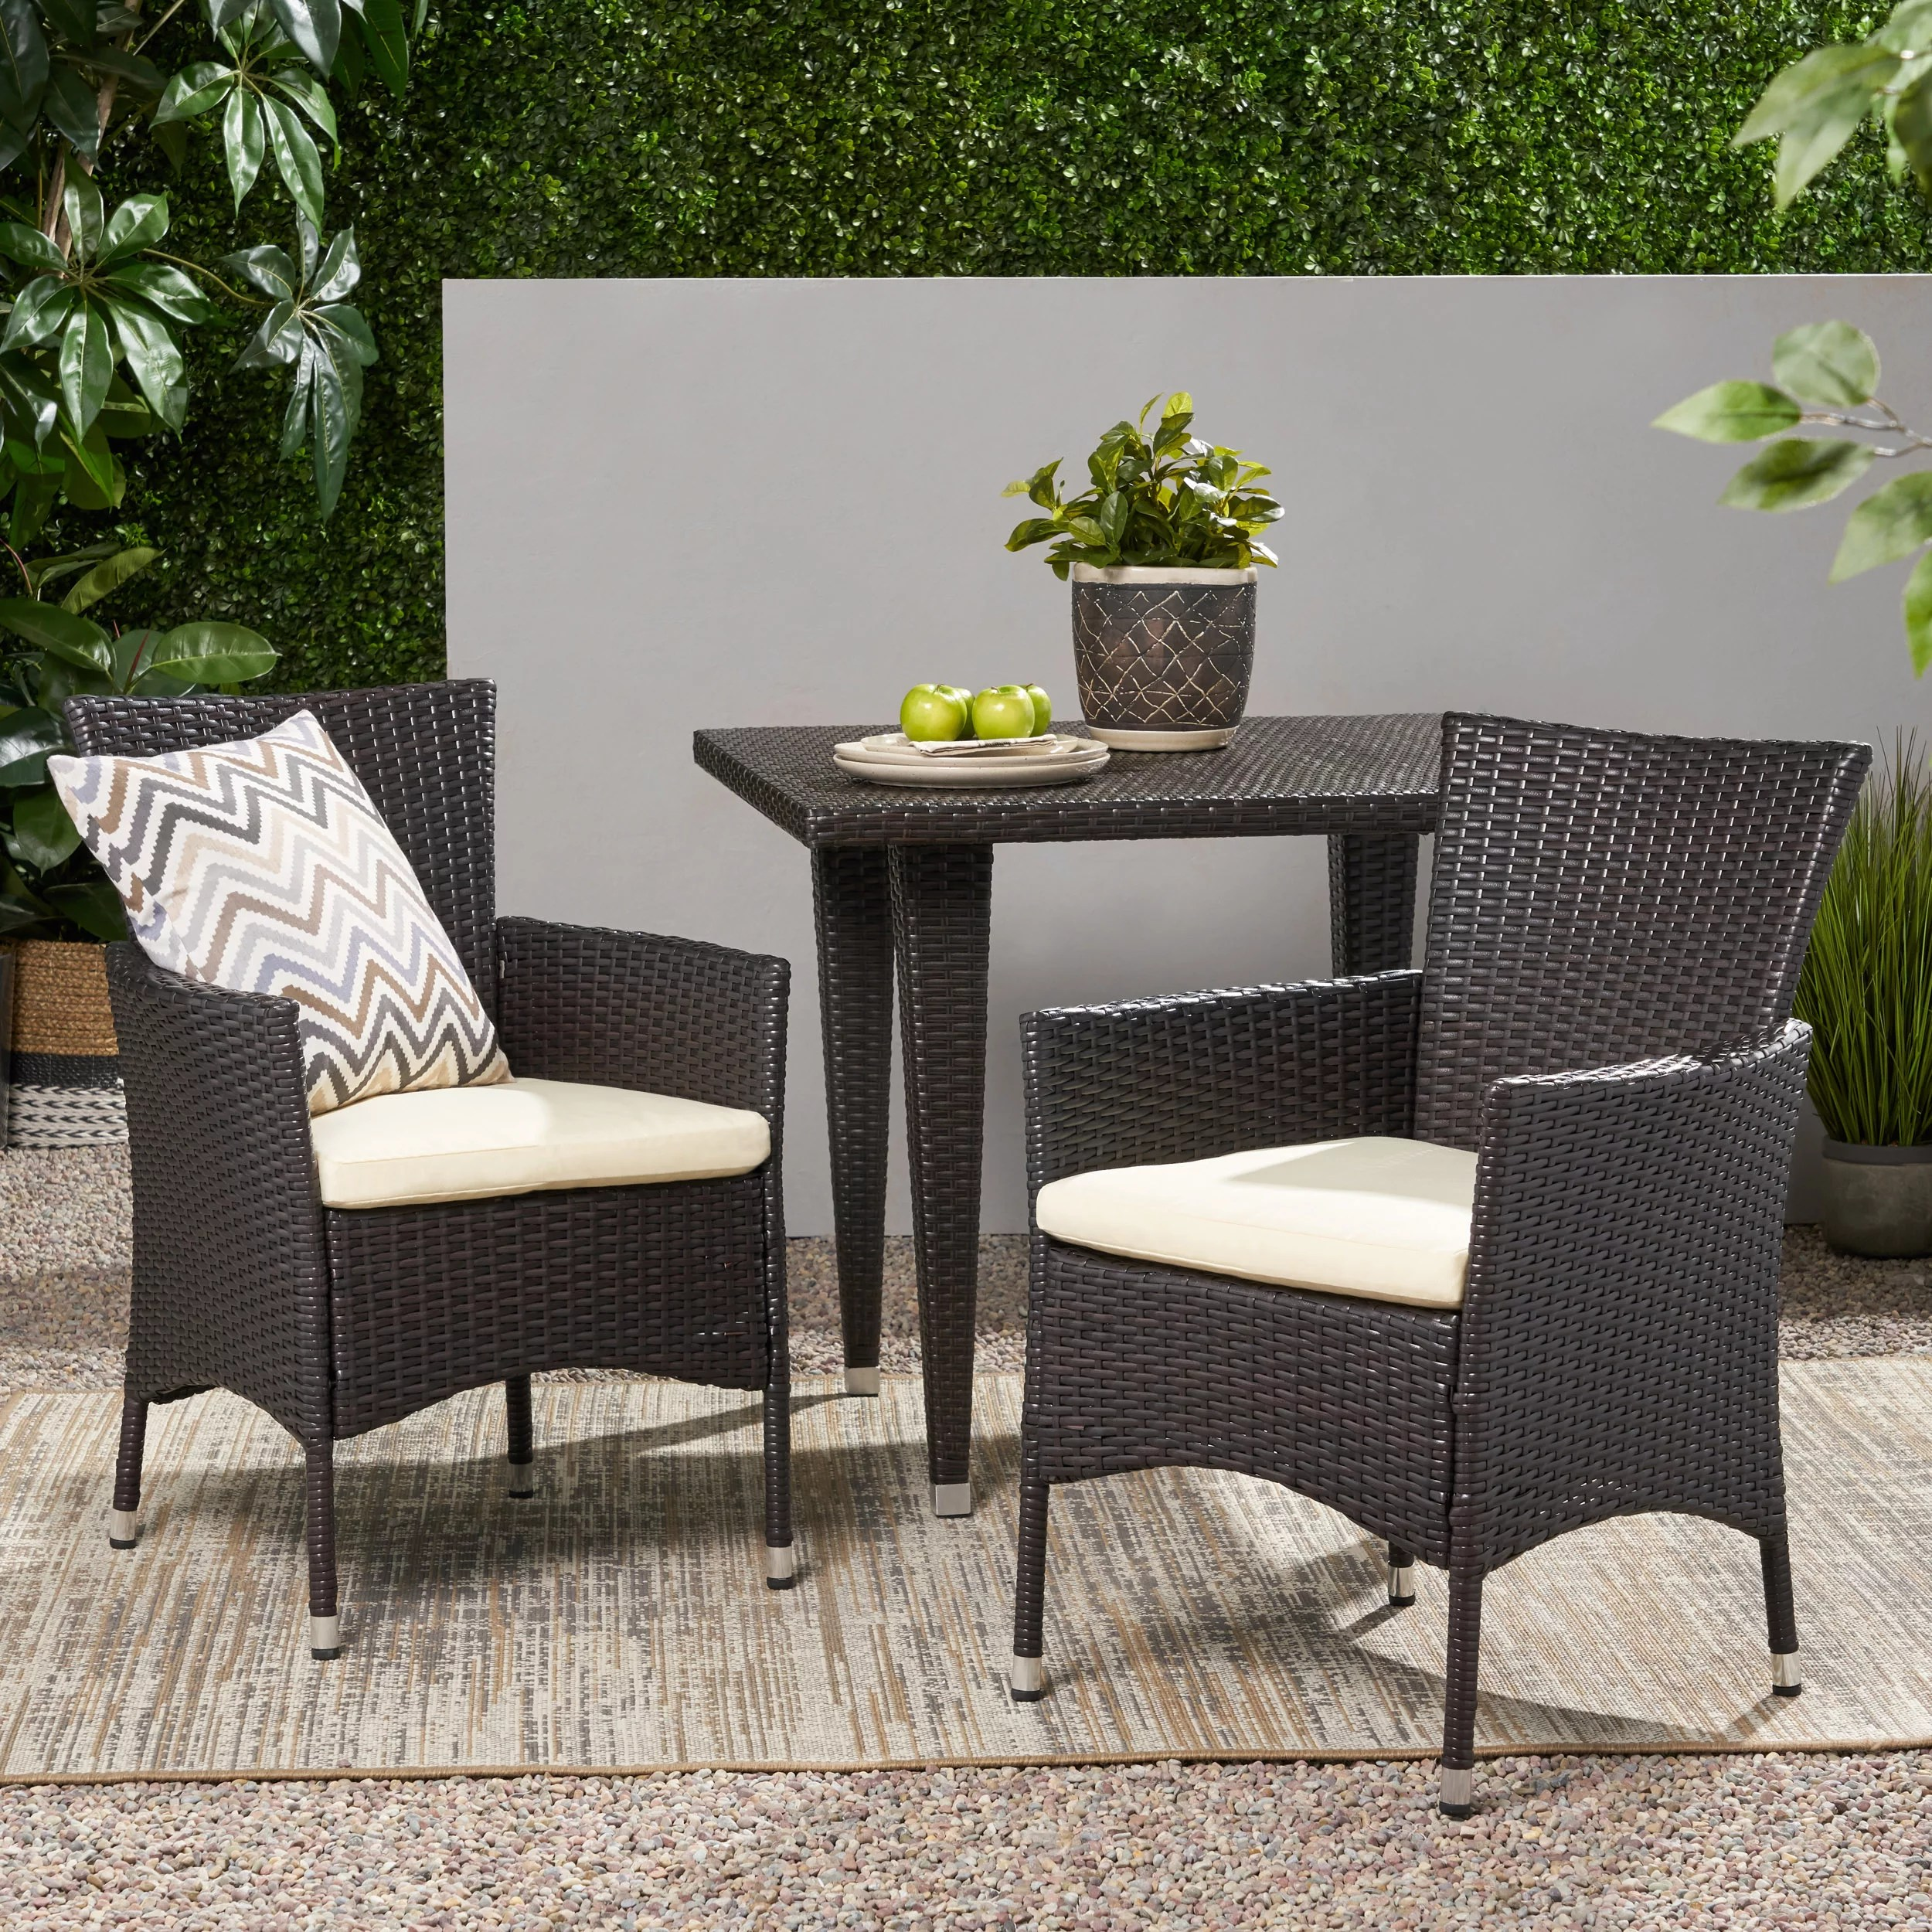 brown wicker outdoor chairs